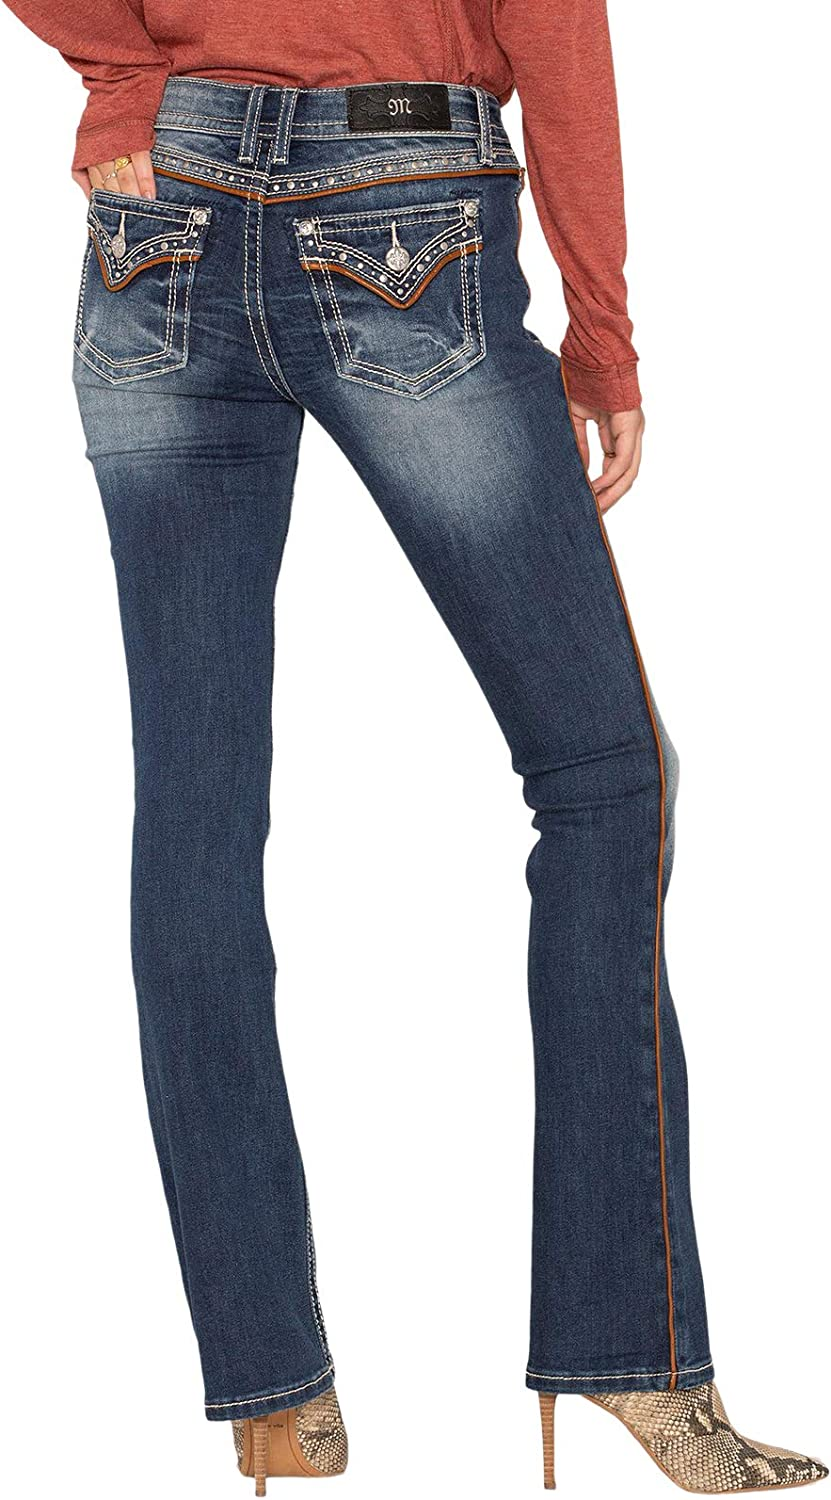 Miss Me Western Feeling Dark Wash Bootcut Jeans up to Size 32,33,34